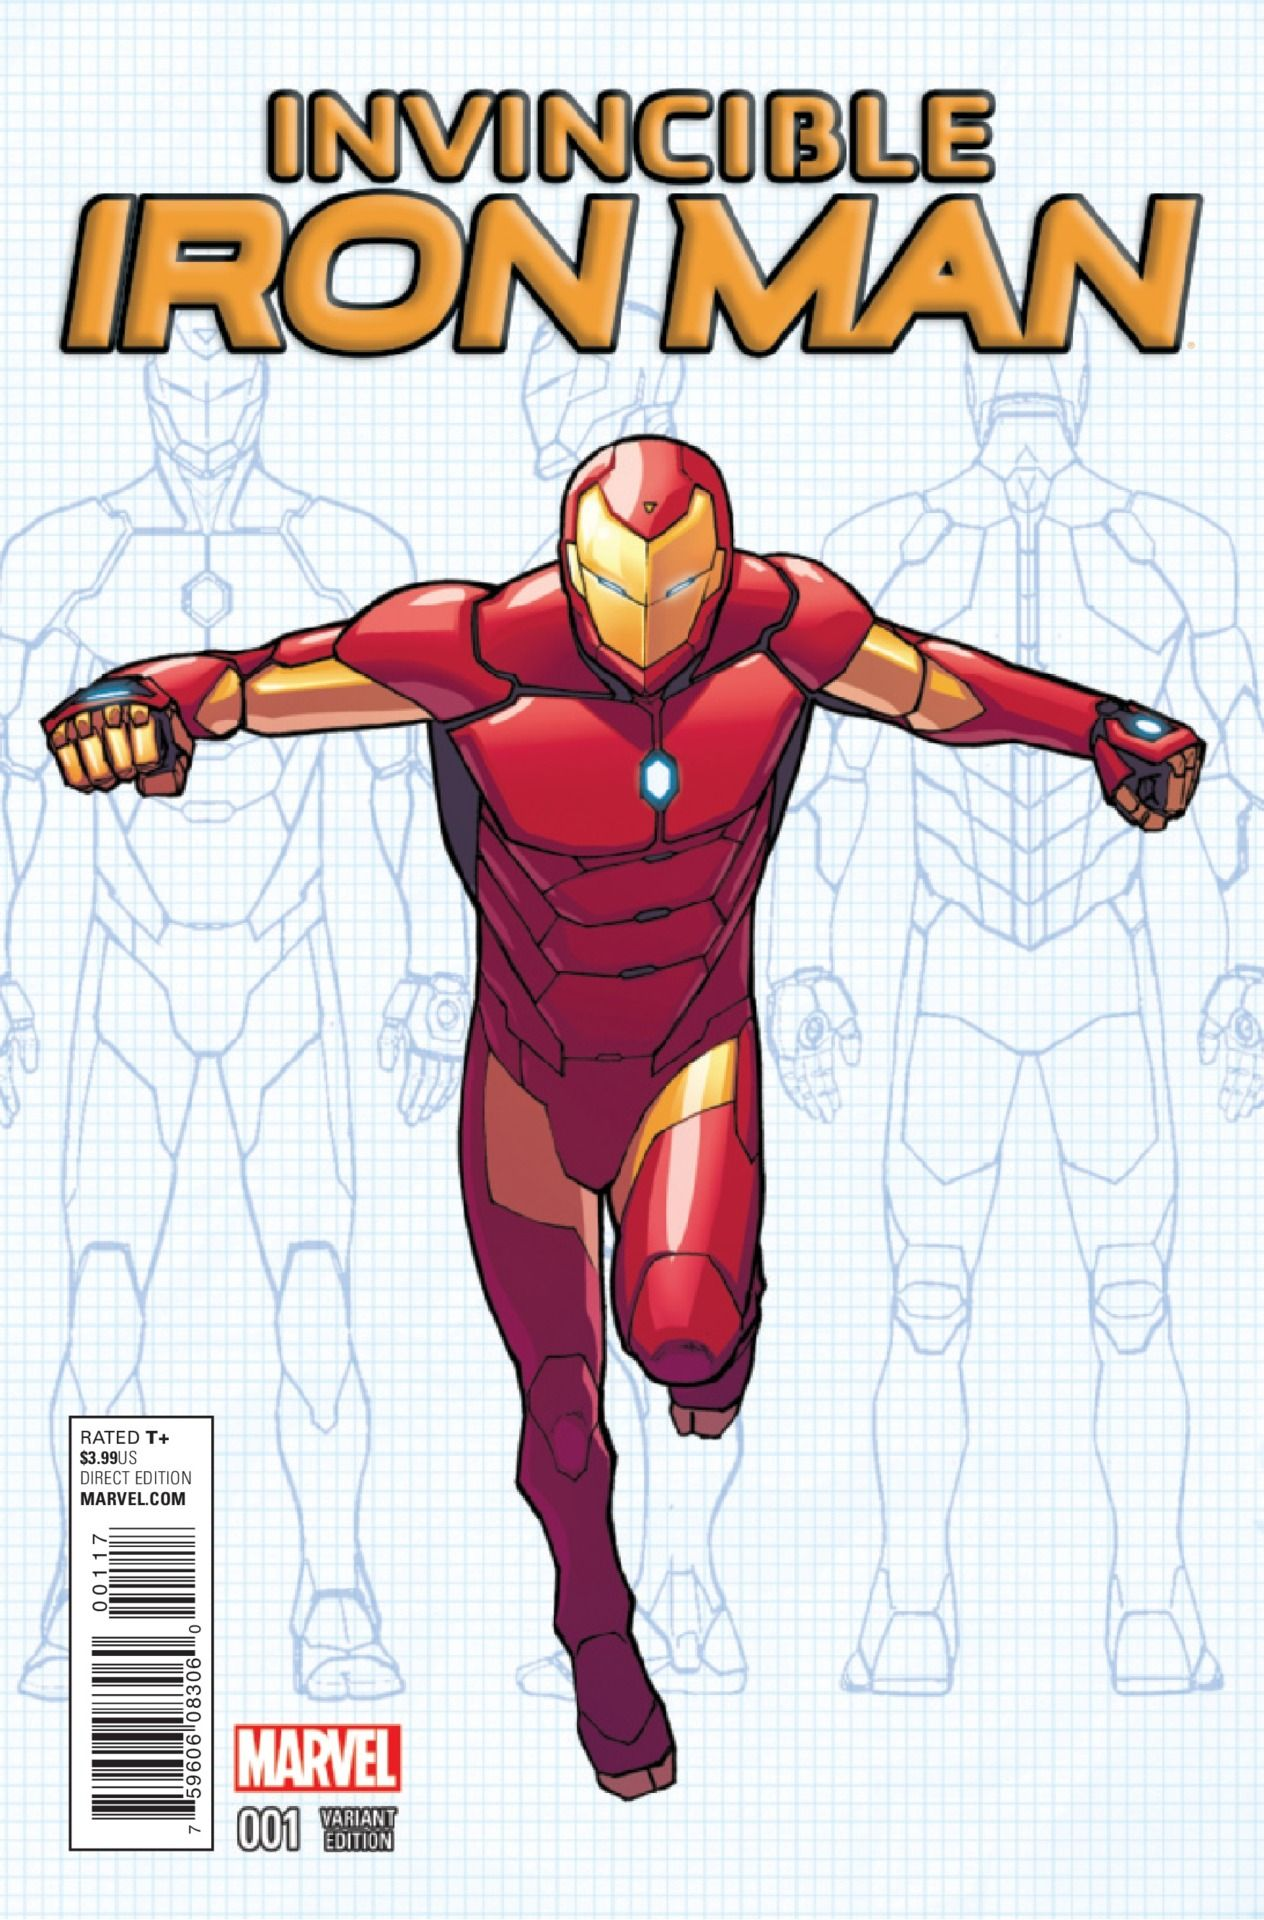 Comics Tony Stark Builds To The Future In Invincible Iron Man 1 Preview Iron Man Comic Iron Man Marvel Iron Man